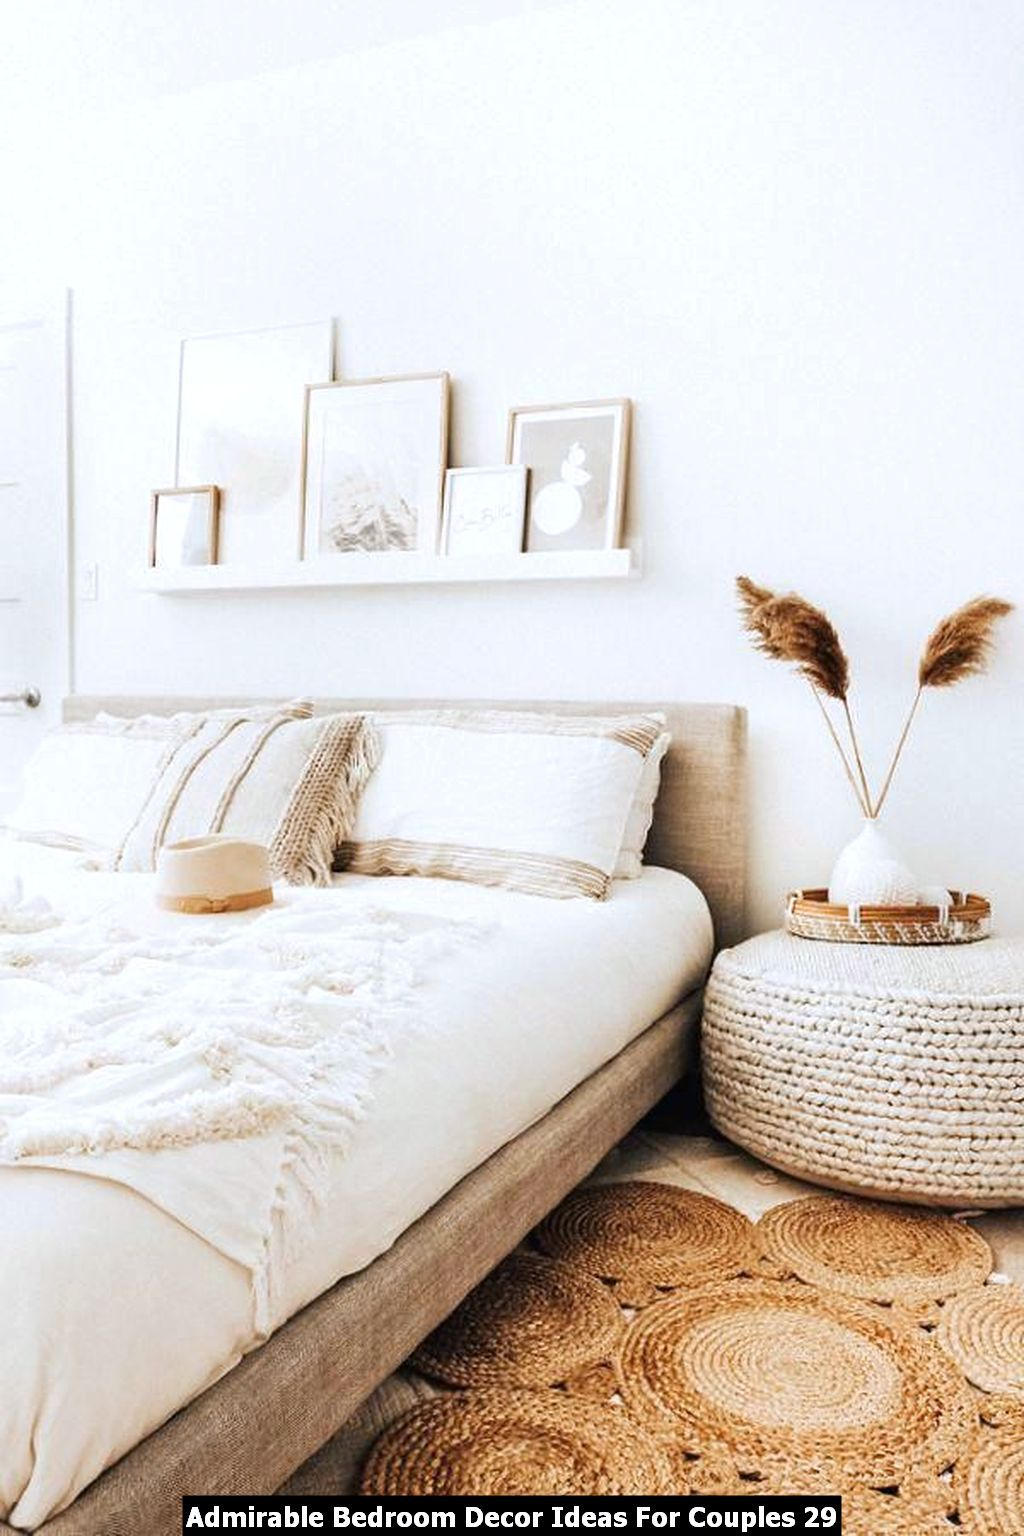 Admirable Bedroom Decor Ideas For Couples Trendehouse Home Decor Bedroom Home Decor Simple Bedroom